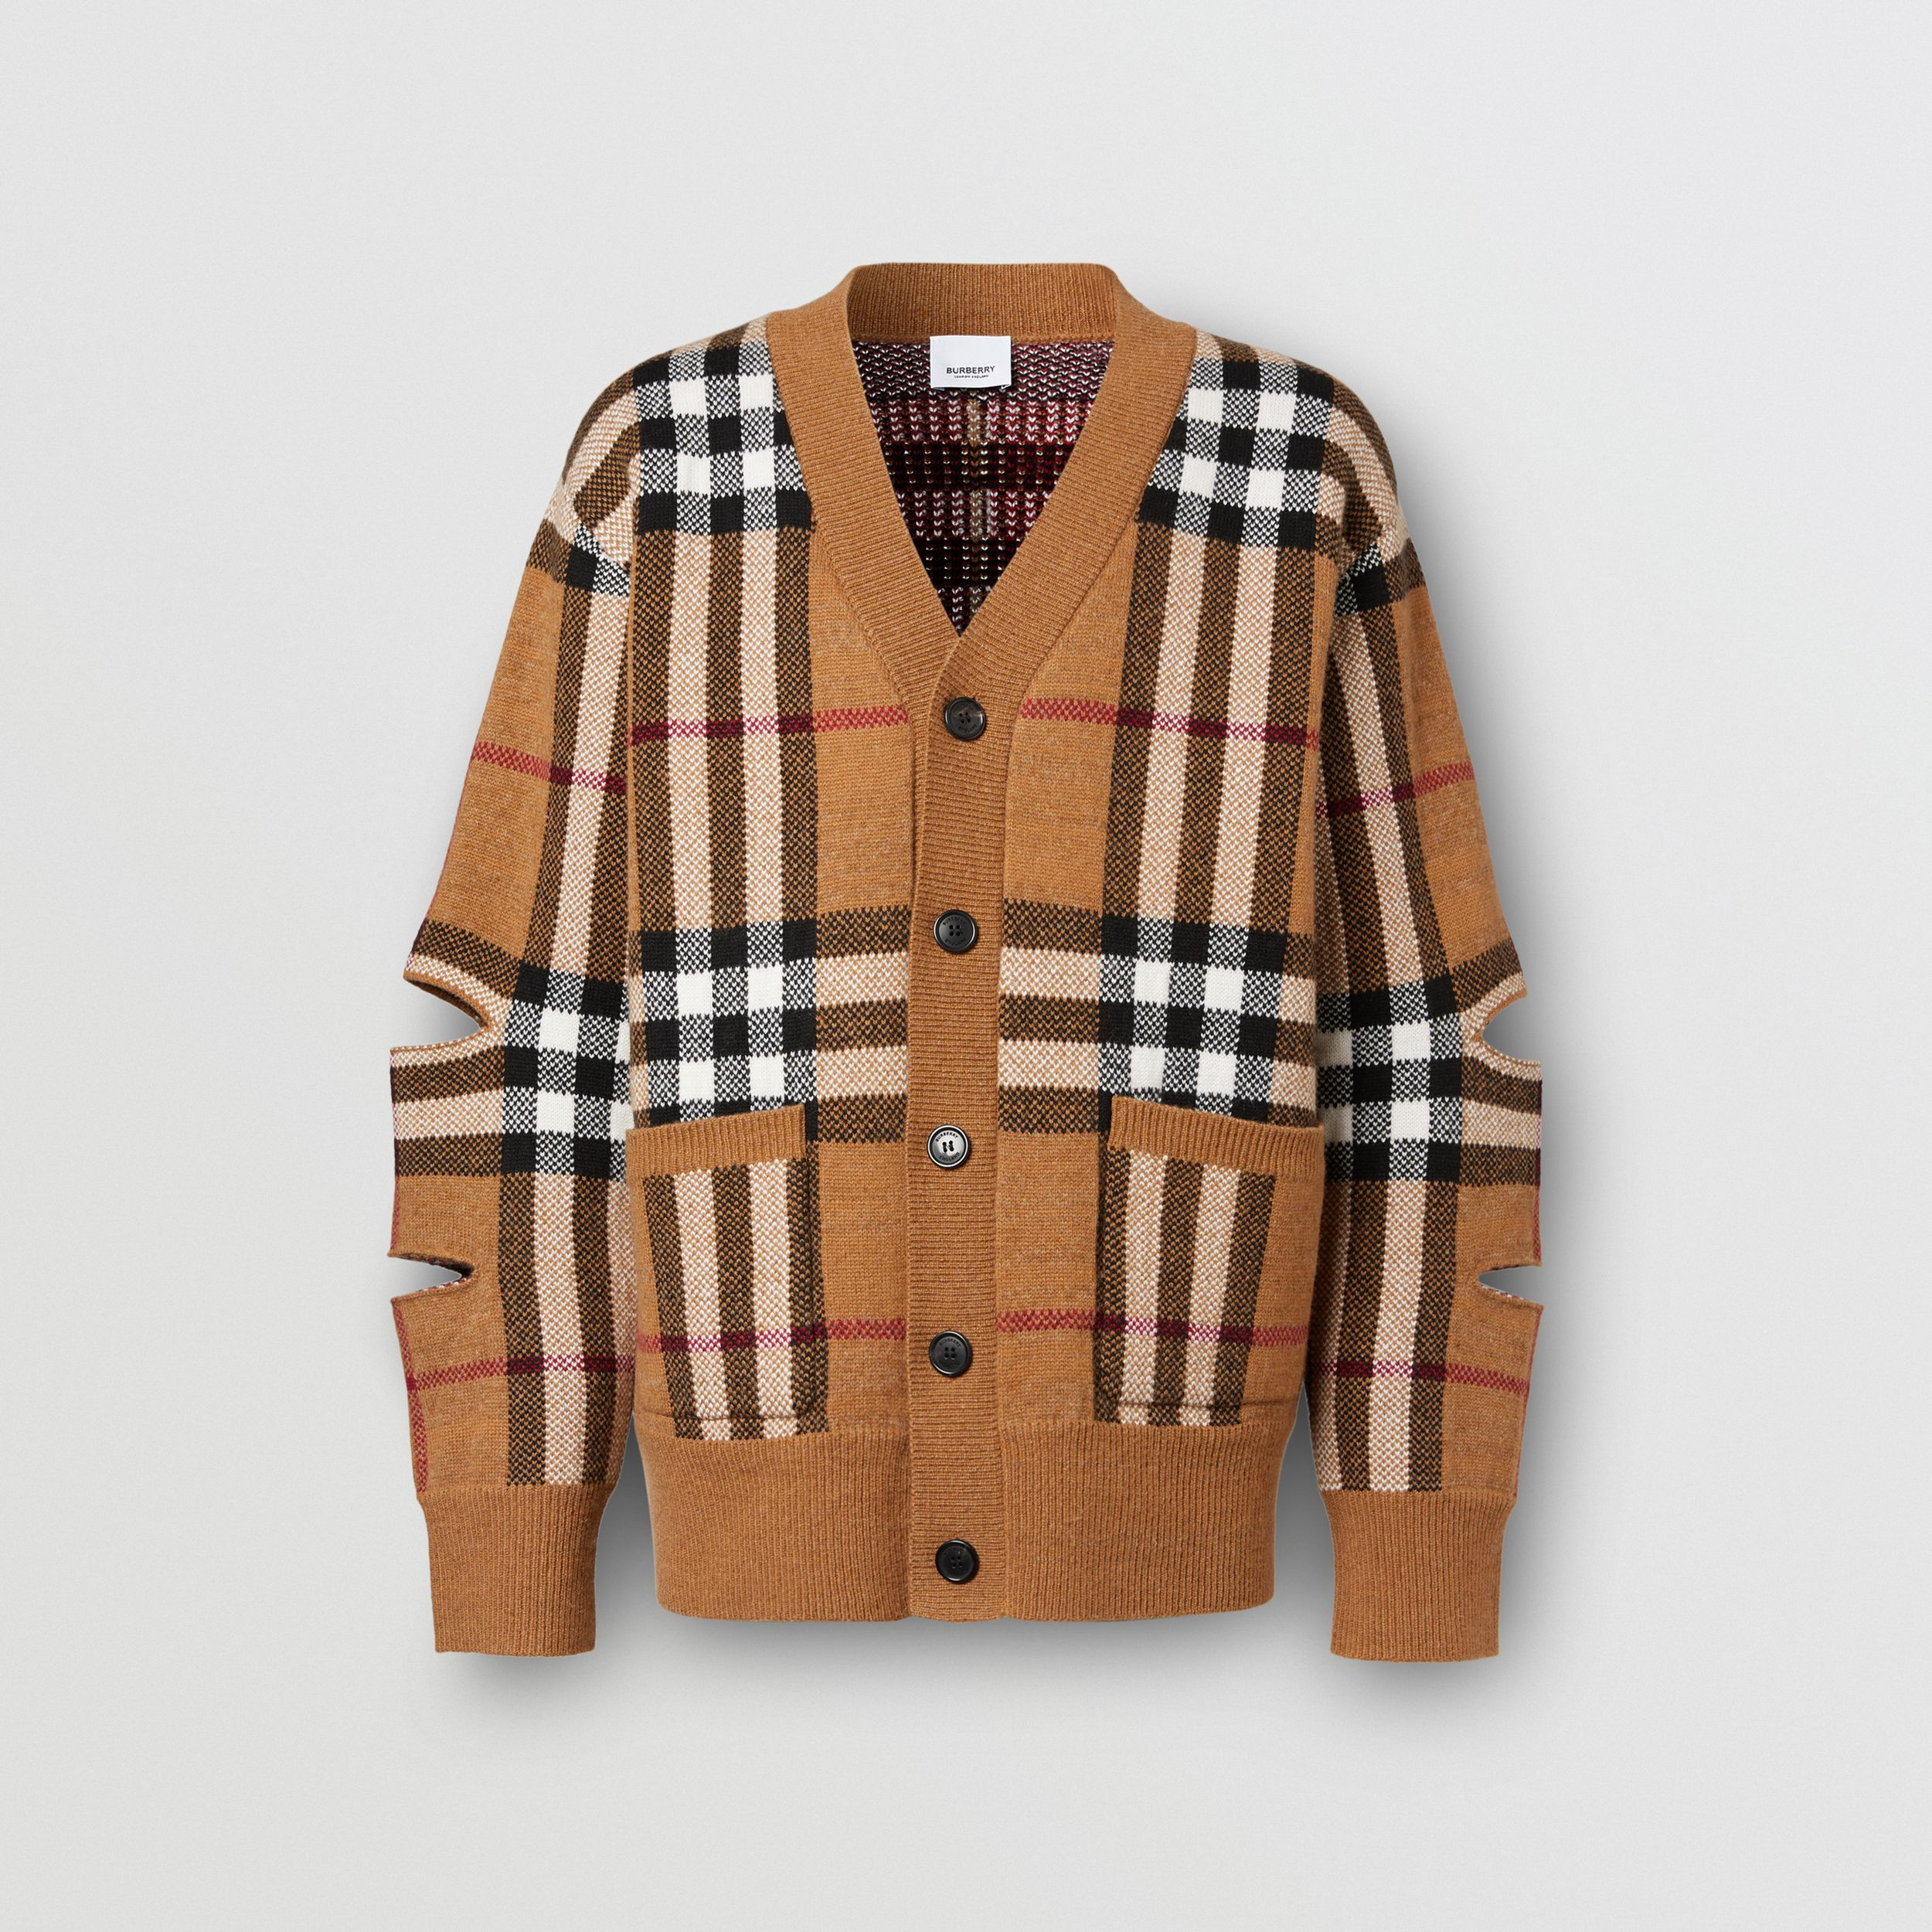 Cut-out Sleeve Check Wool Cashmere Cardigan in Birch Brown - Men | Burberry - 4